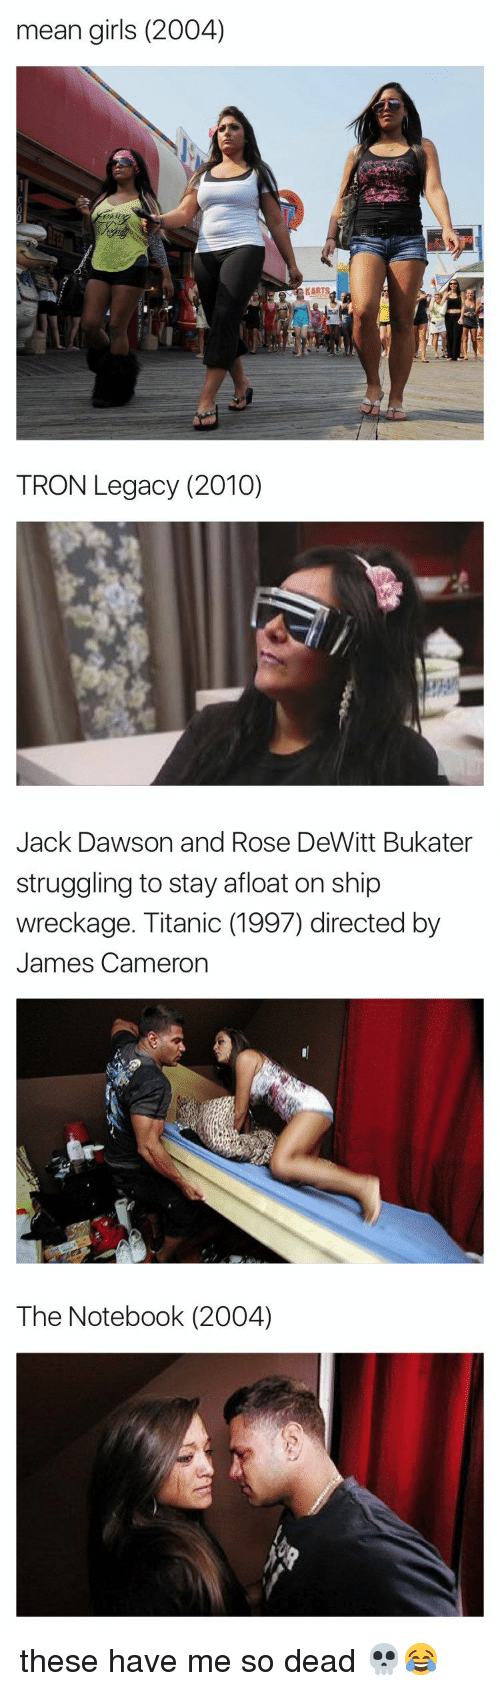 Funny, Notebook, and Struggle: mean girls (2004)   TRON Legacy (2010)   Jack Dawson and Rose DeWitt Bukater  struggling to stay afloat on ship  wreckage. Titanic (1997) directed by  James Cameron   The Notebook (2004) these have me so dead 💀😂